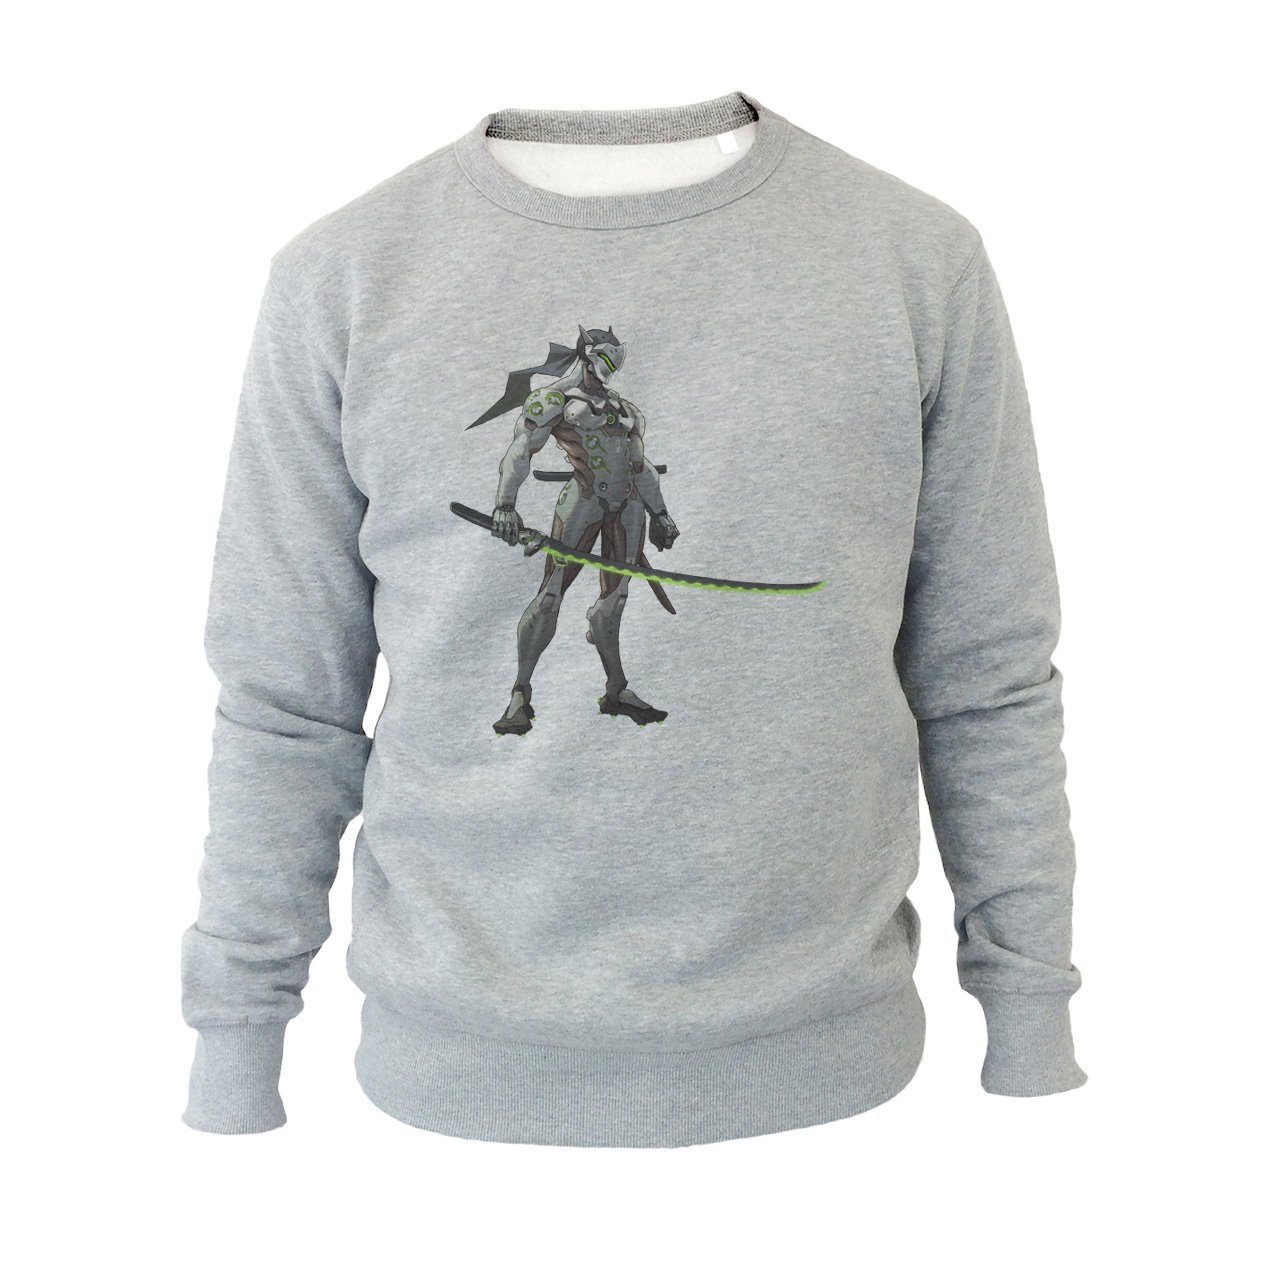 Overwatch Video Game Genji Sword Ninja Green Small Unisex ...